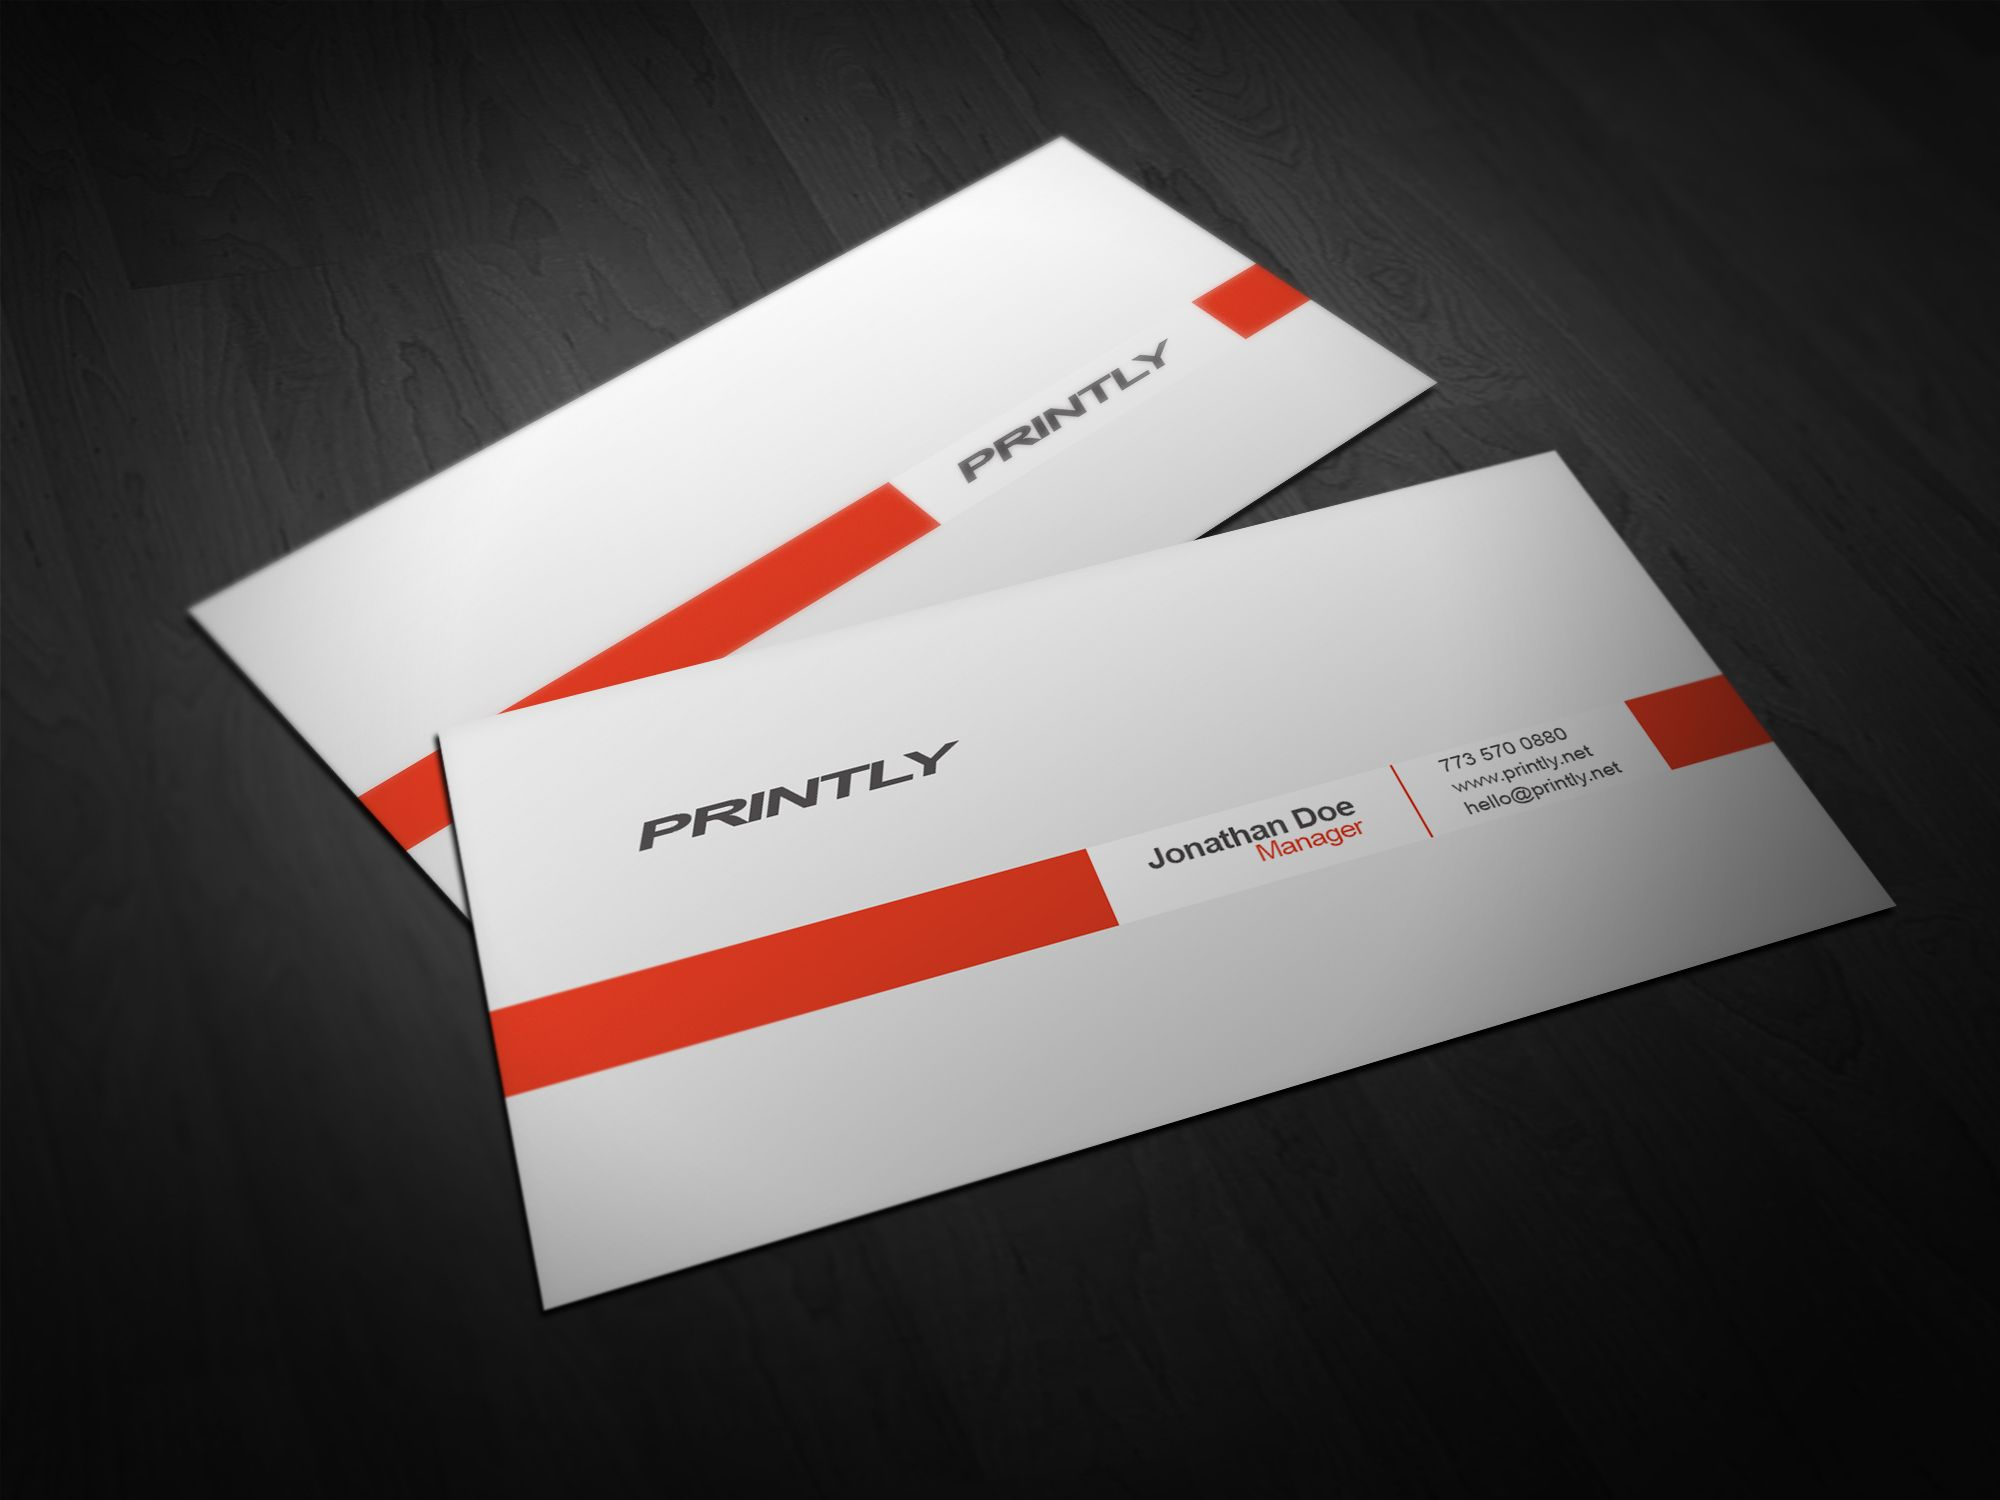 Free printly psd business card template printly design free printly psd business card template printly wajeb Image collections